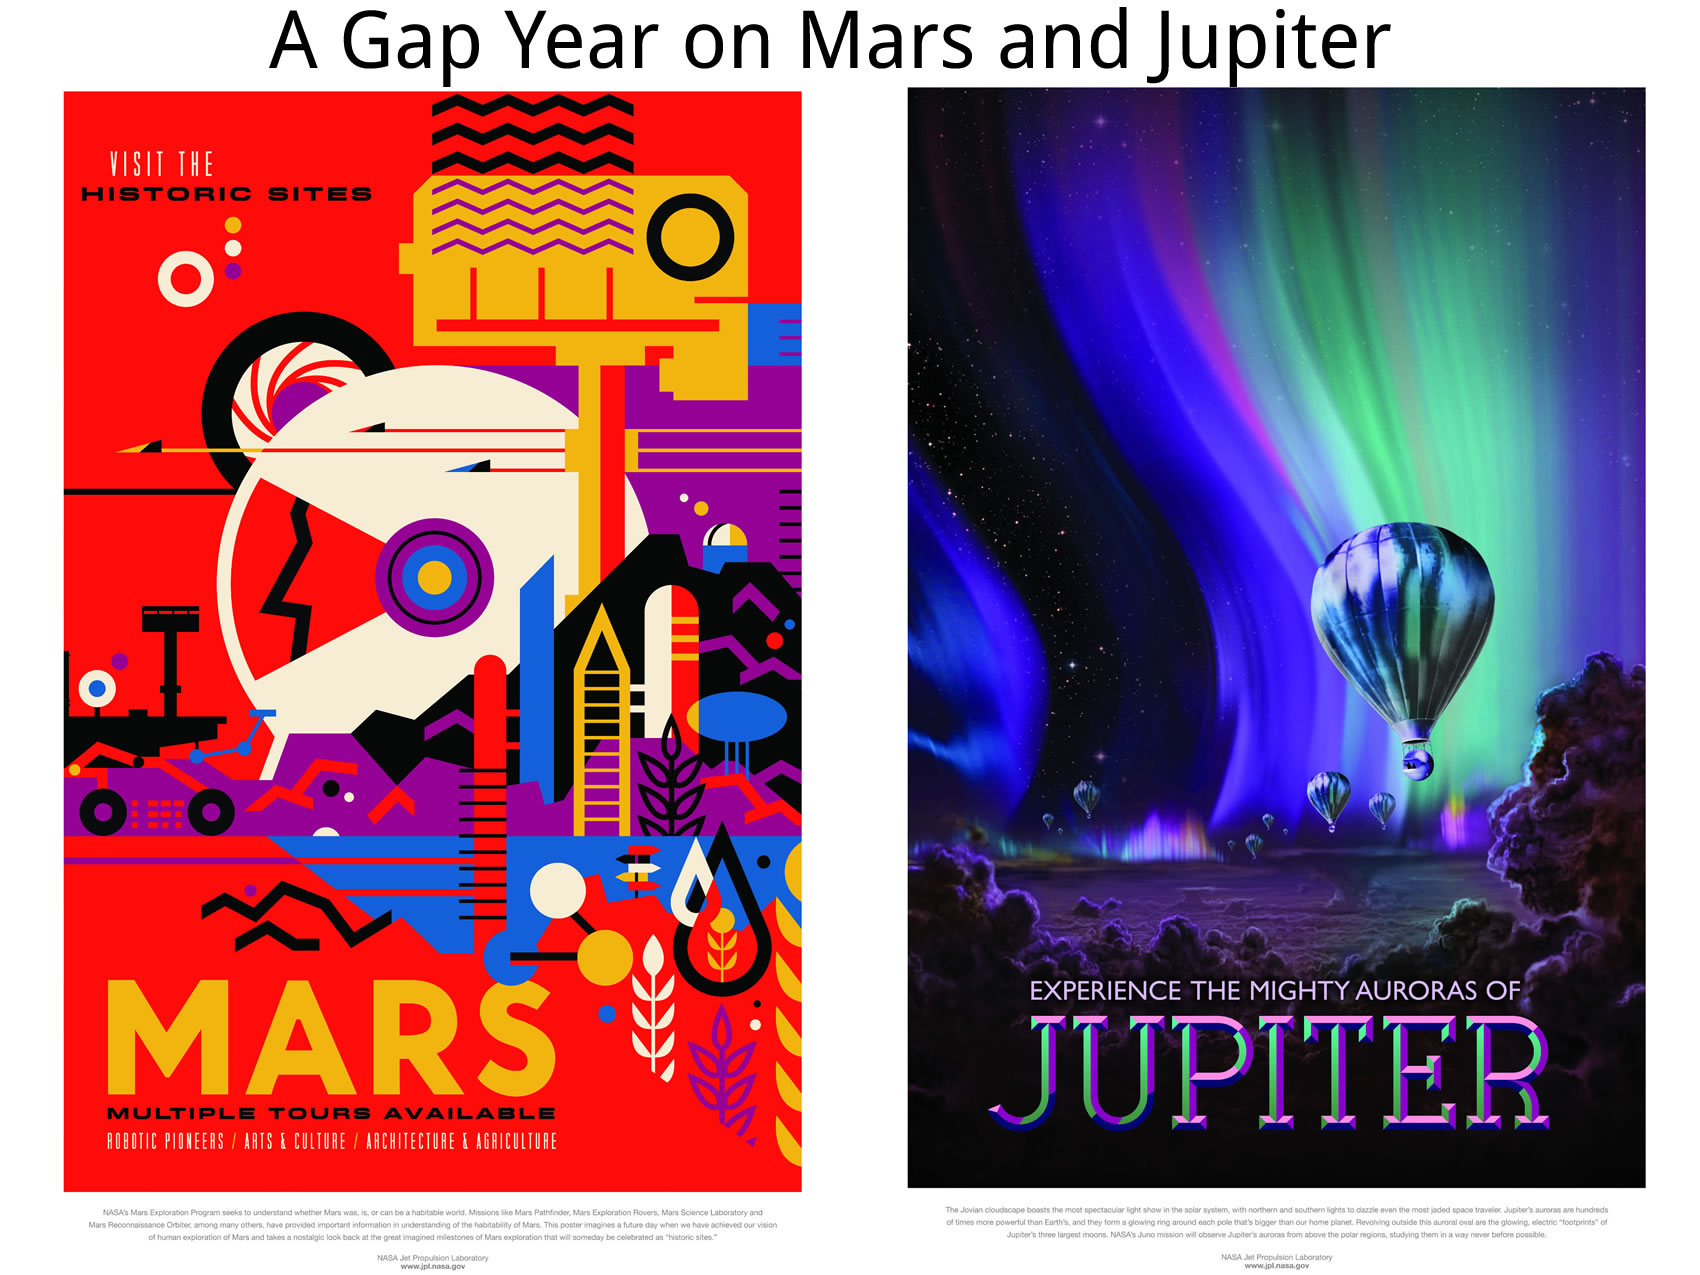 A Gap Year on Mars and Jupiter - Images Courtesy of NASA/JPL-Caltech